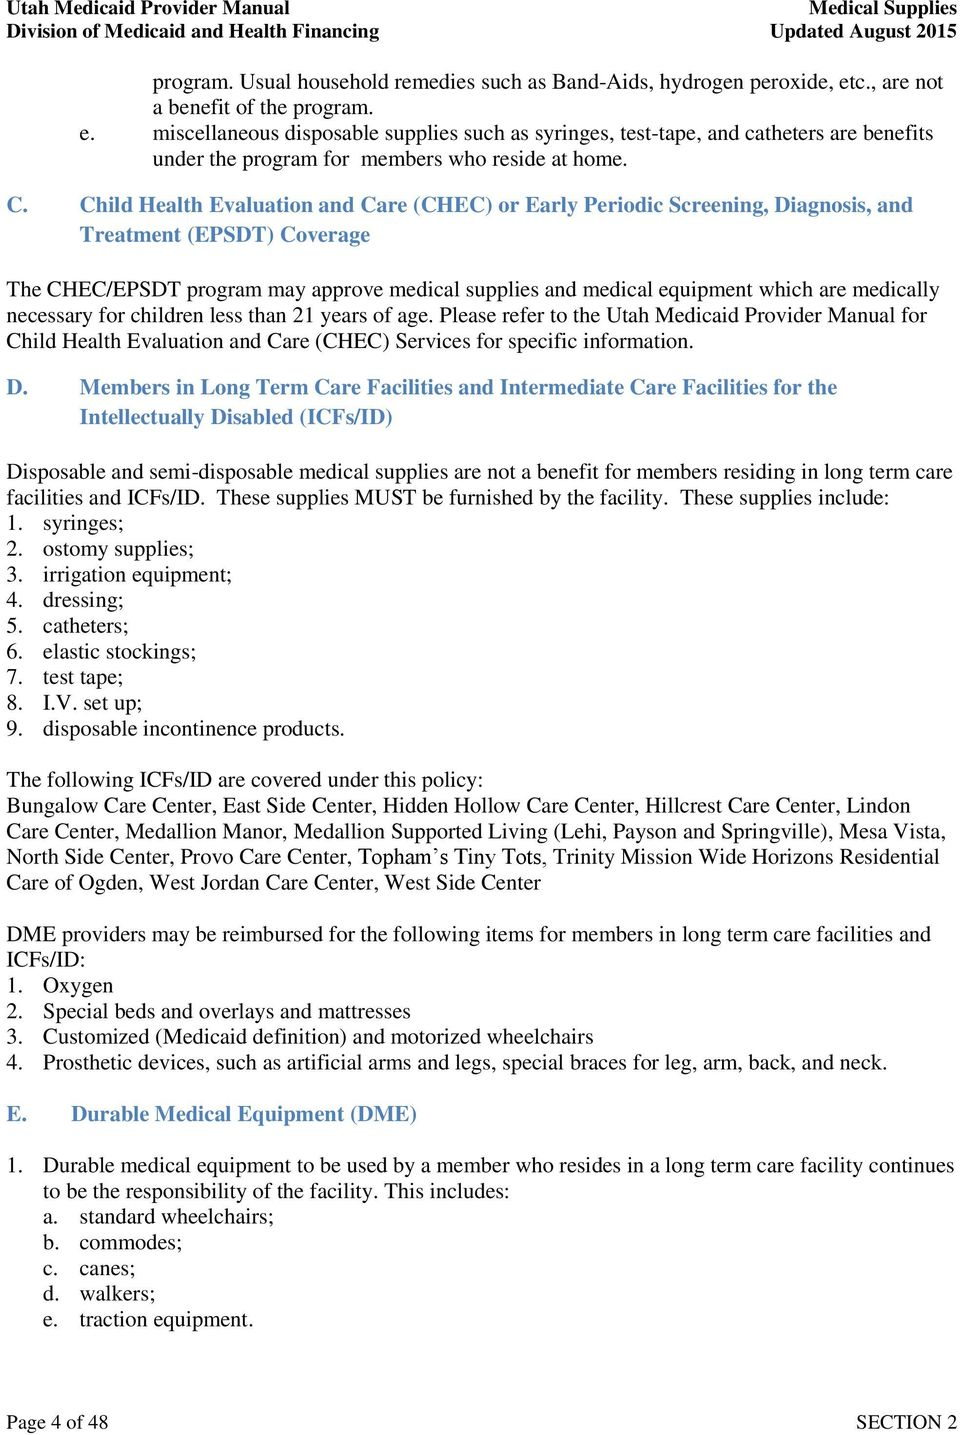 SECTION 2  Medical Supplies  Table of Contents - PDF